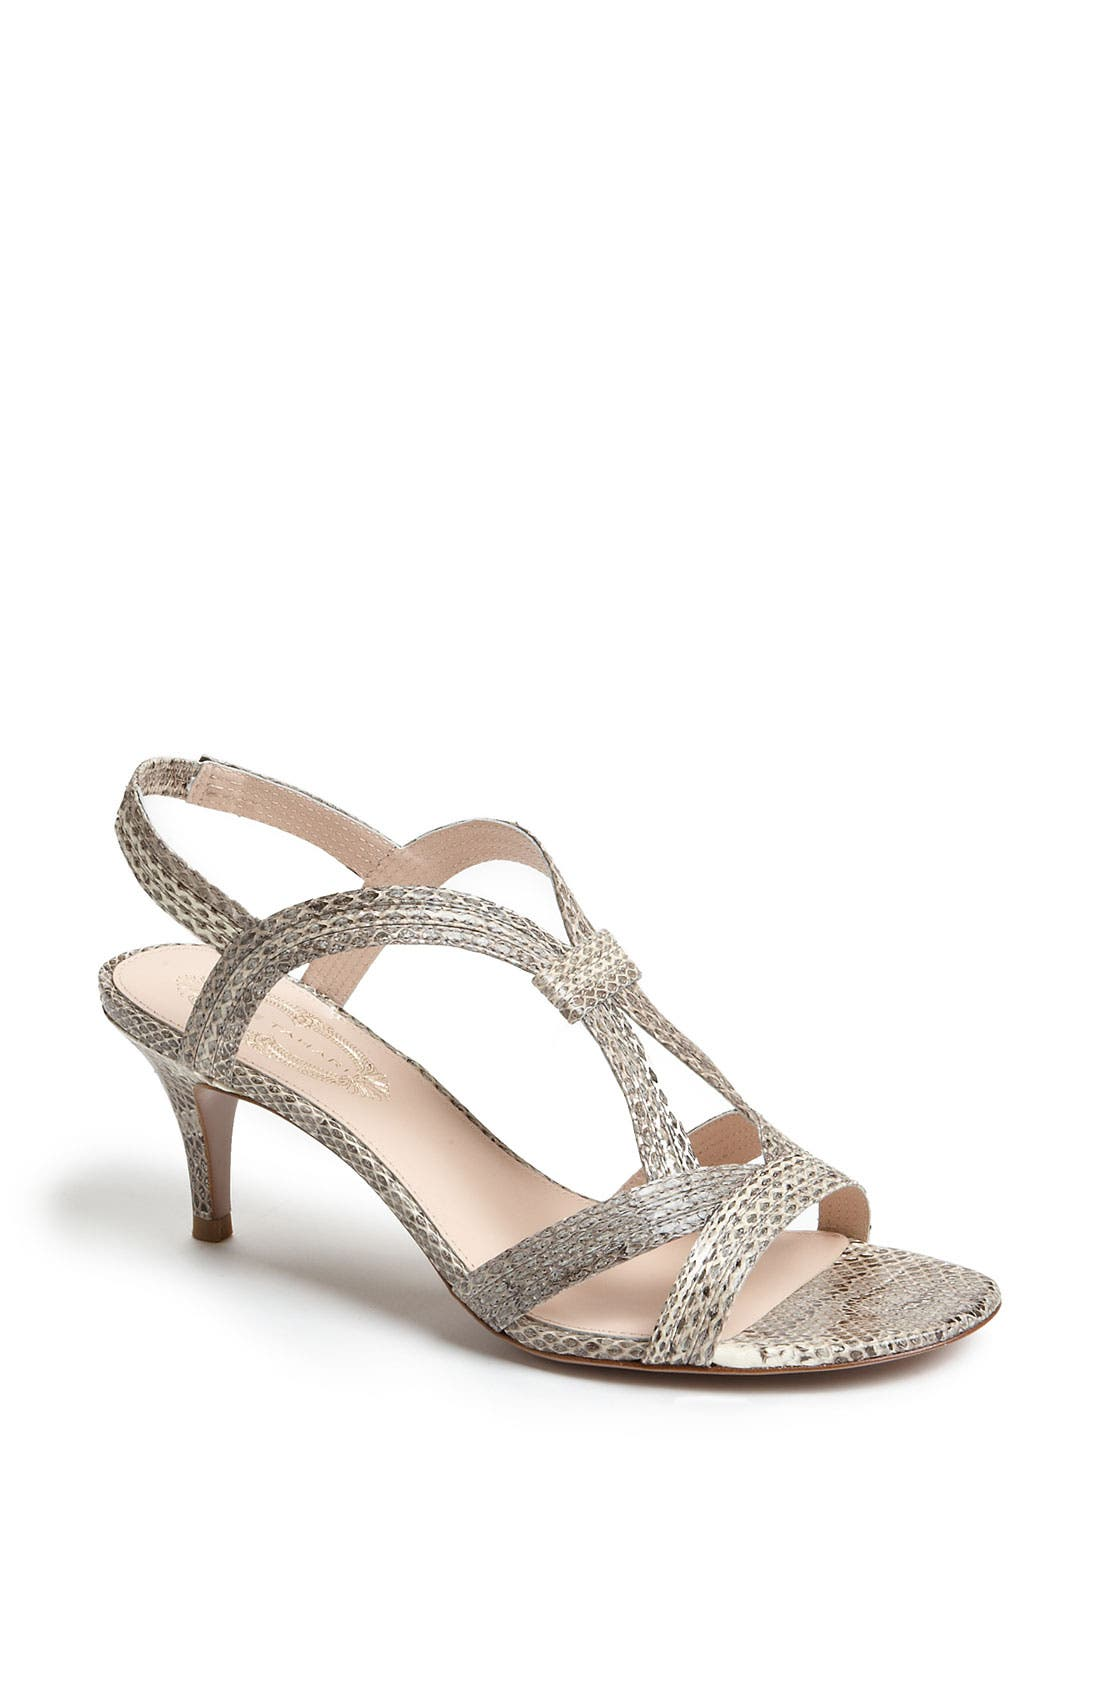 'Zoe' Sandal,                         Main,                         color, Natural